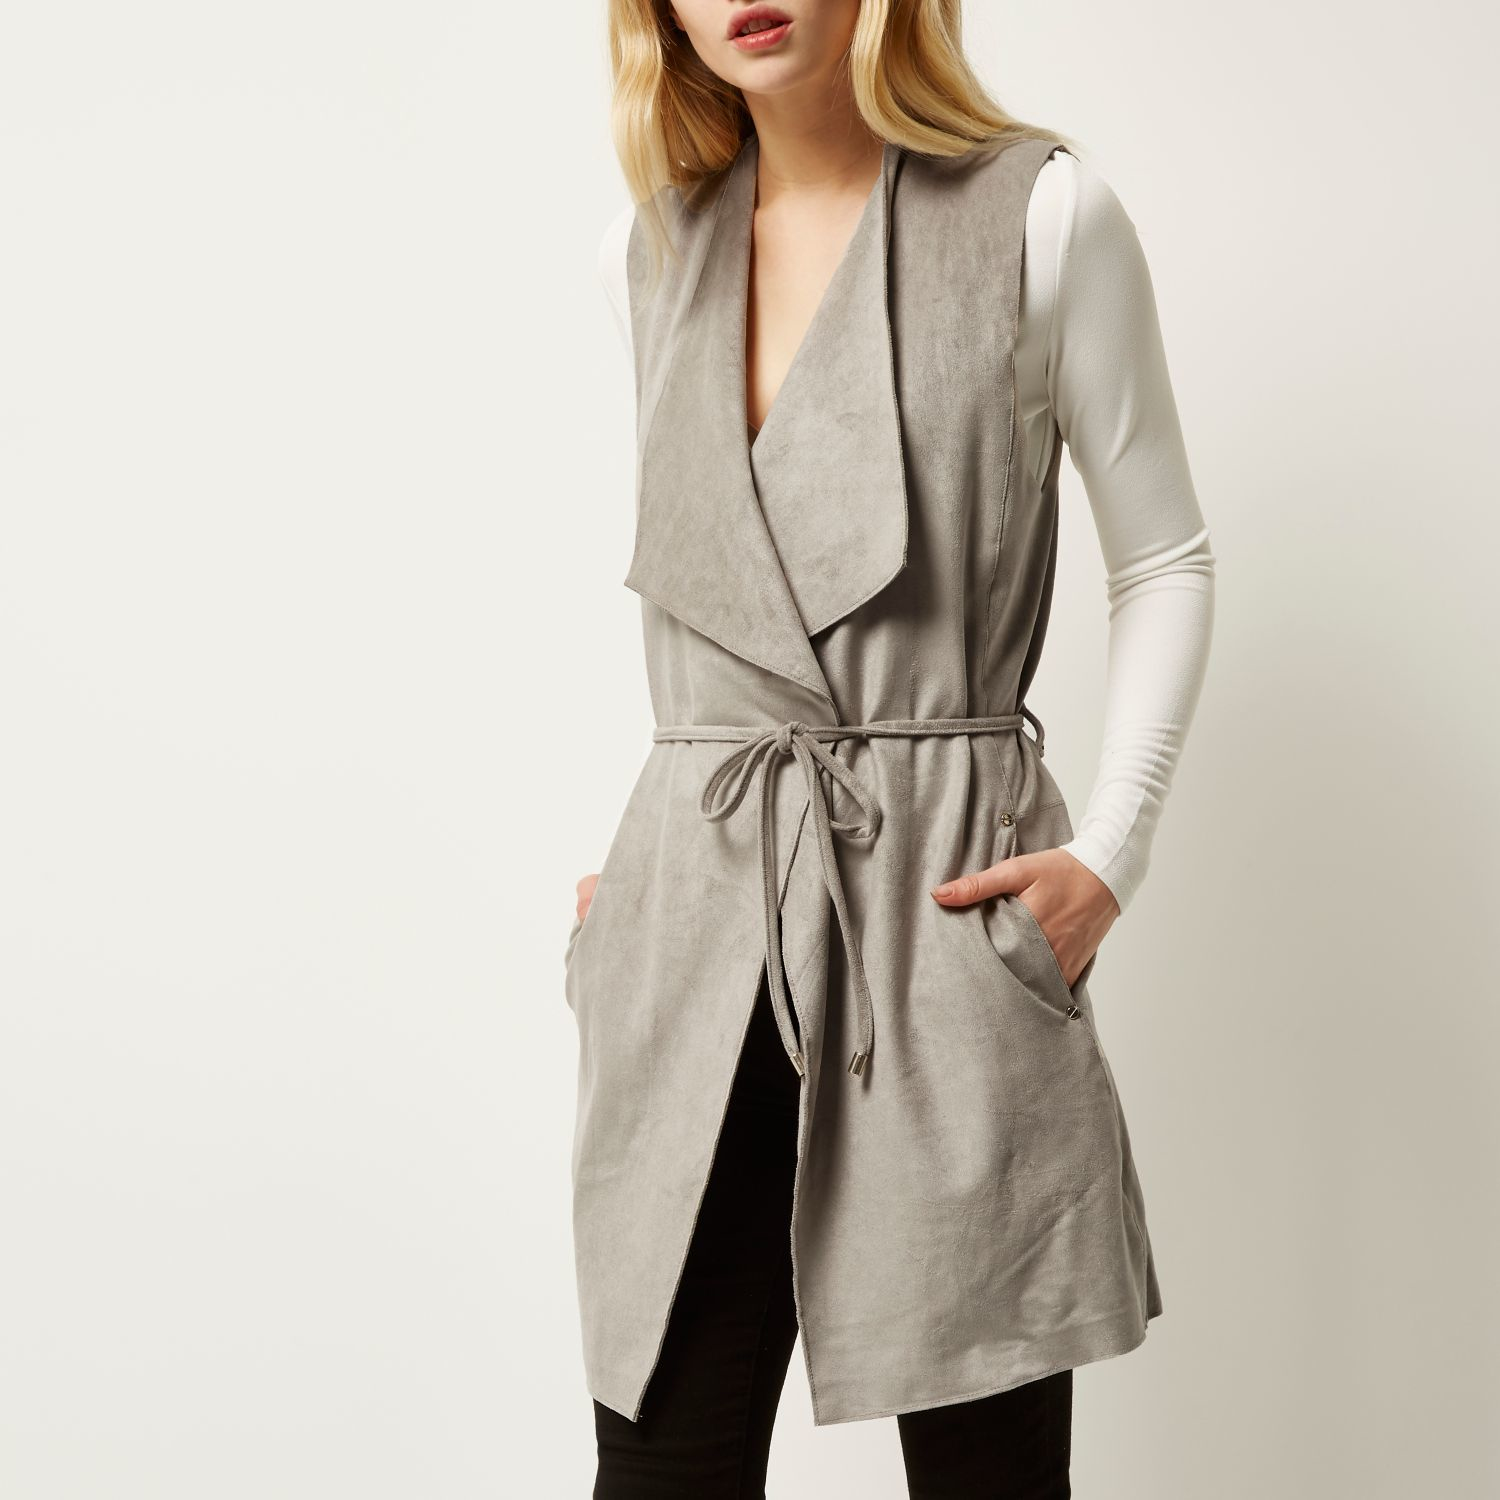 aa891bfb8e914 River Island Light Grey Faux Suede Sleeveless Jacket in Gray - Lyst